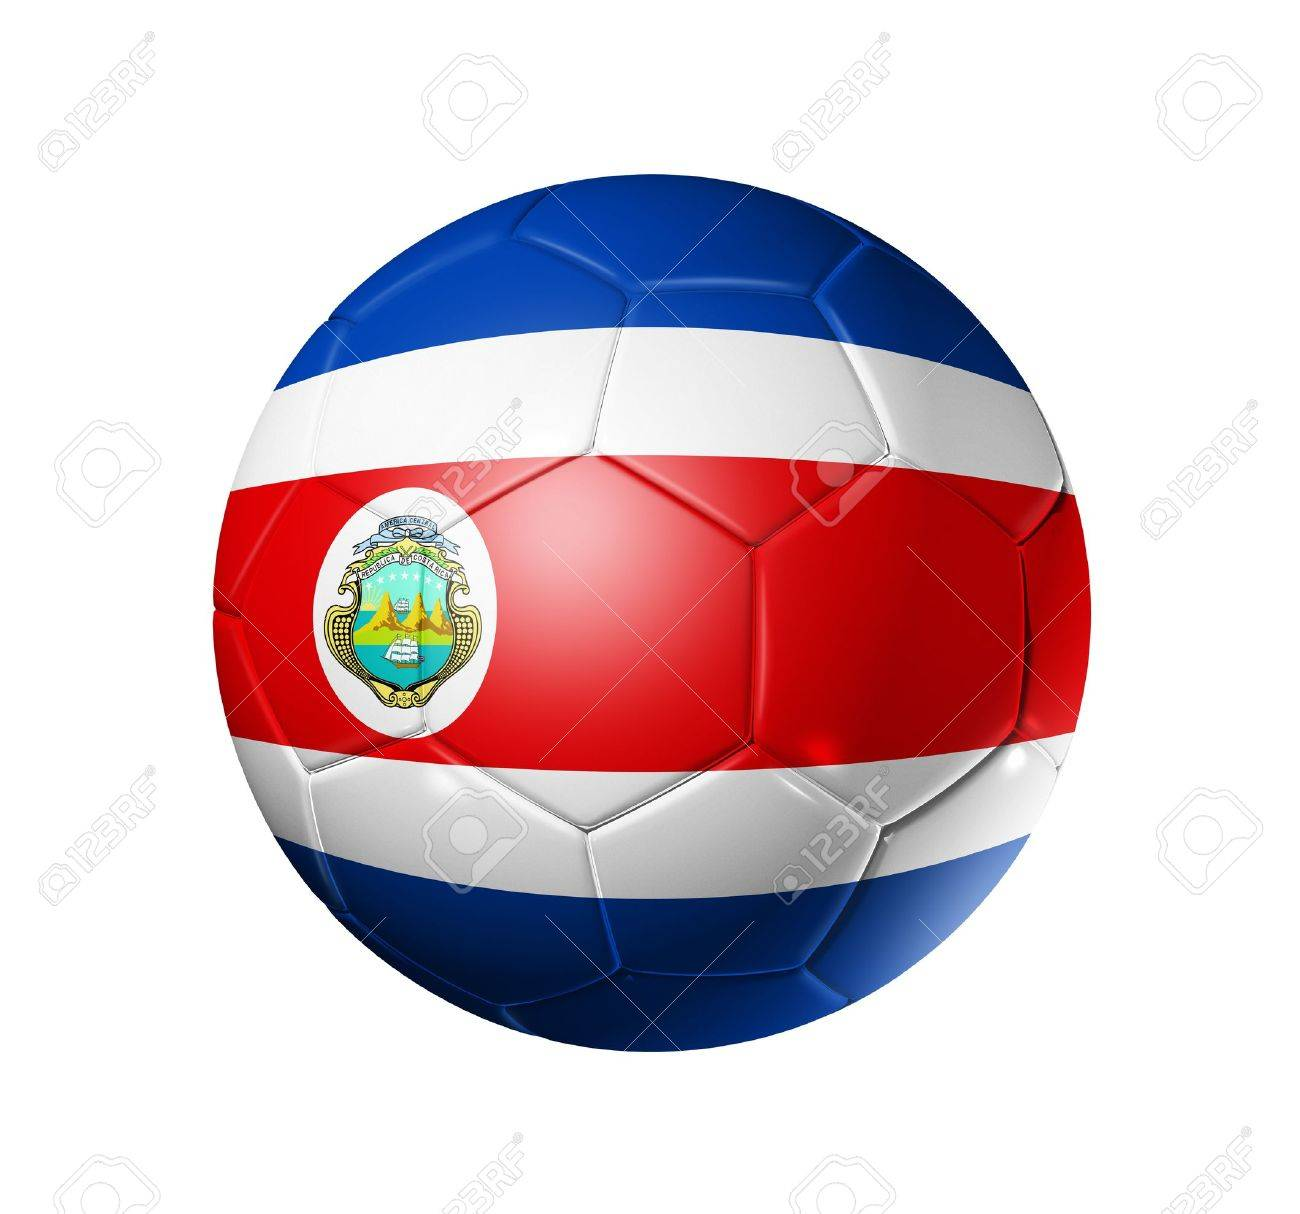 da755b46262 3D soccer ball with Costa Rica team flag. isolated on white with clipping  path Stock